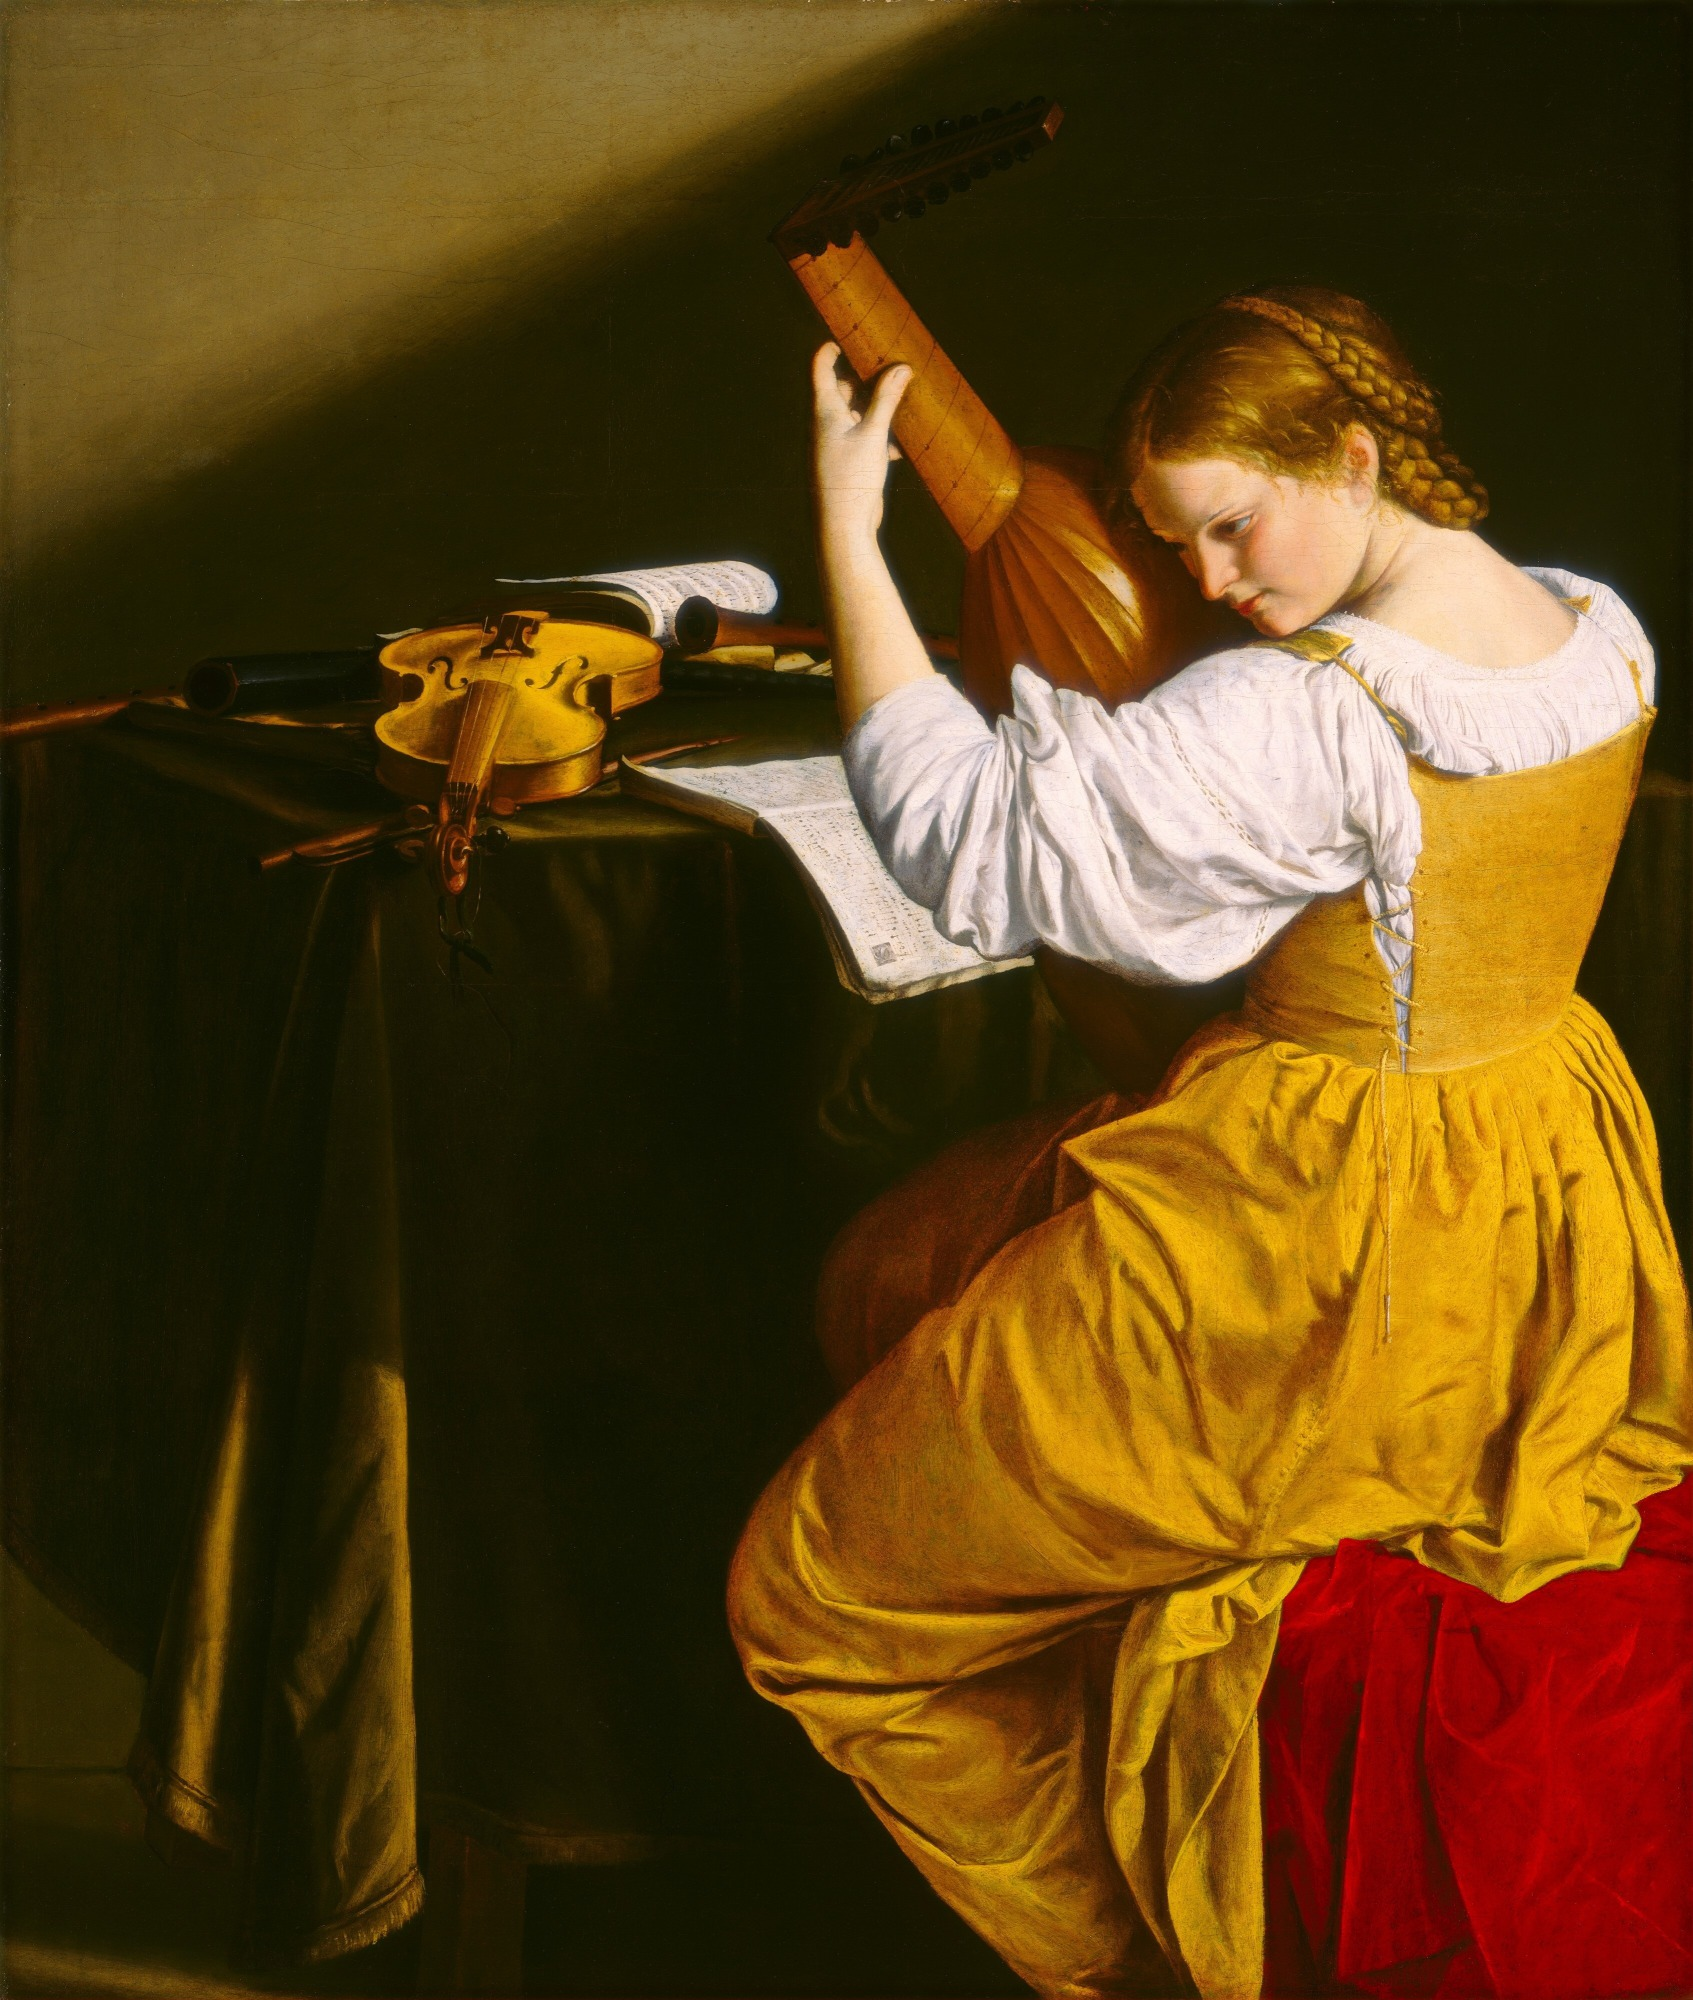 Gentileschi(Orazio)-1612-20-Il_suonatore_di_liuto-canvas-143.5x129cm-National_Gallery_of_Art, Washington,).jpg